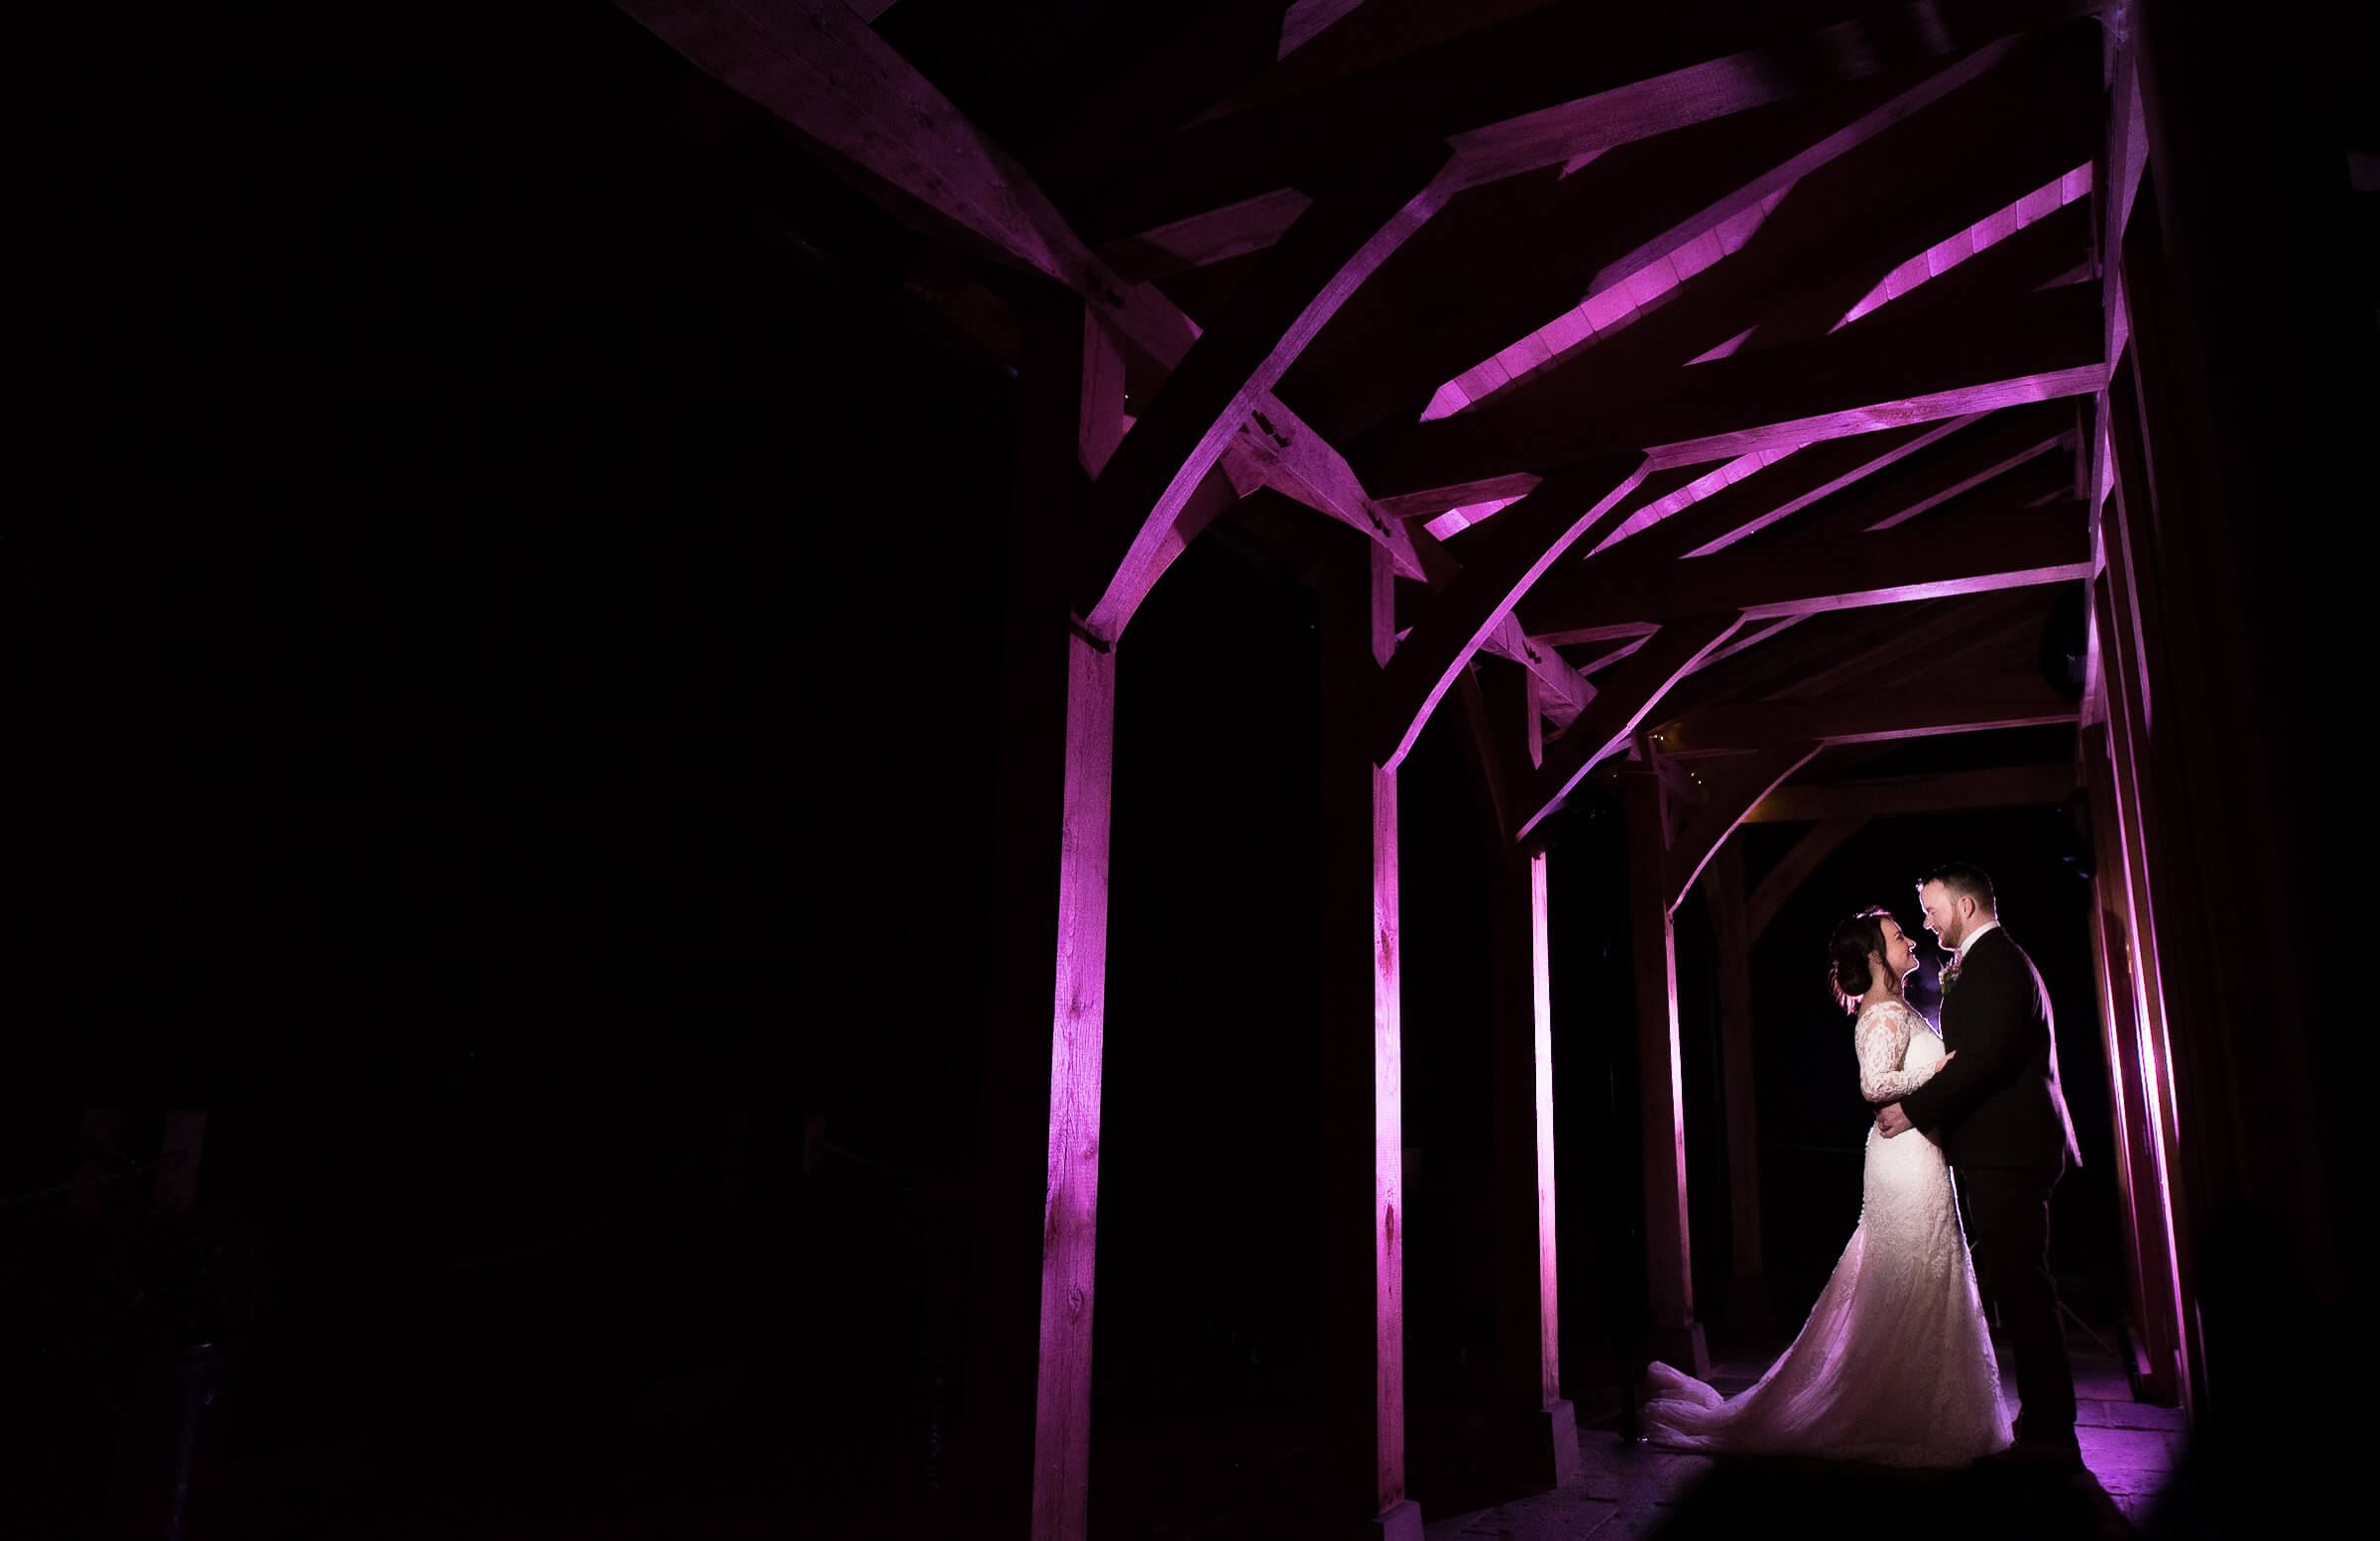 creative image of bride and groom under wooden beams